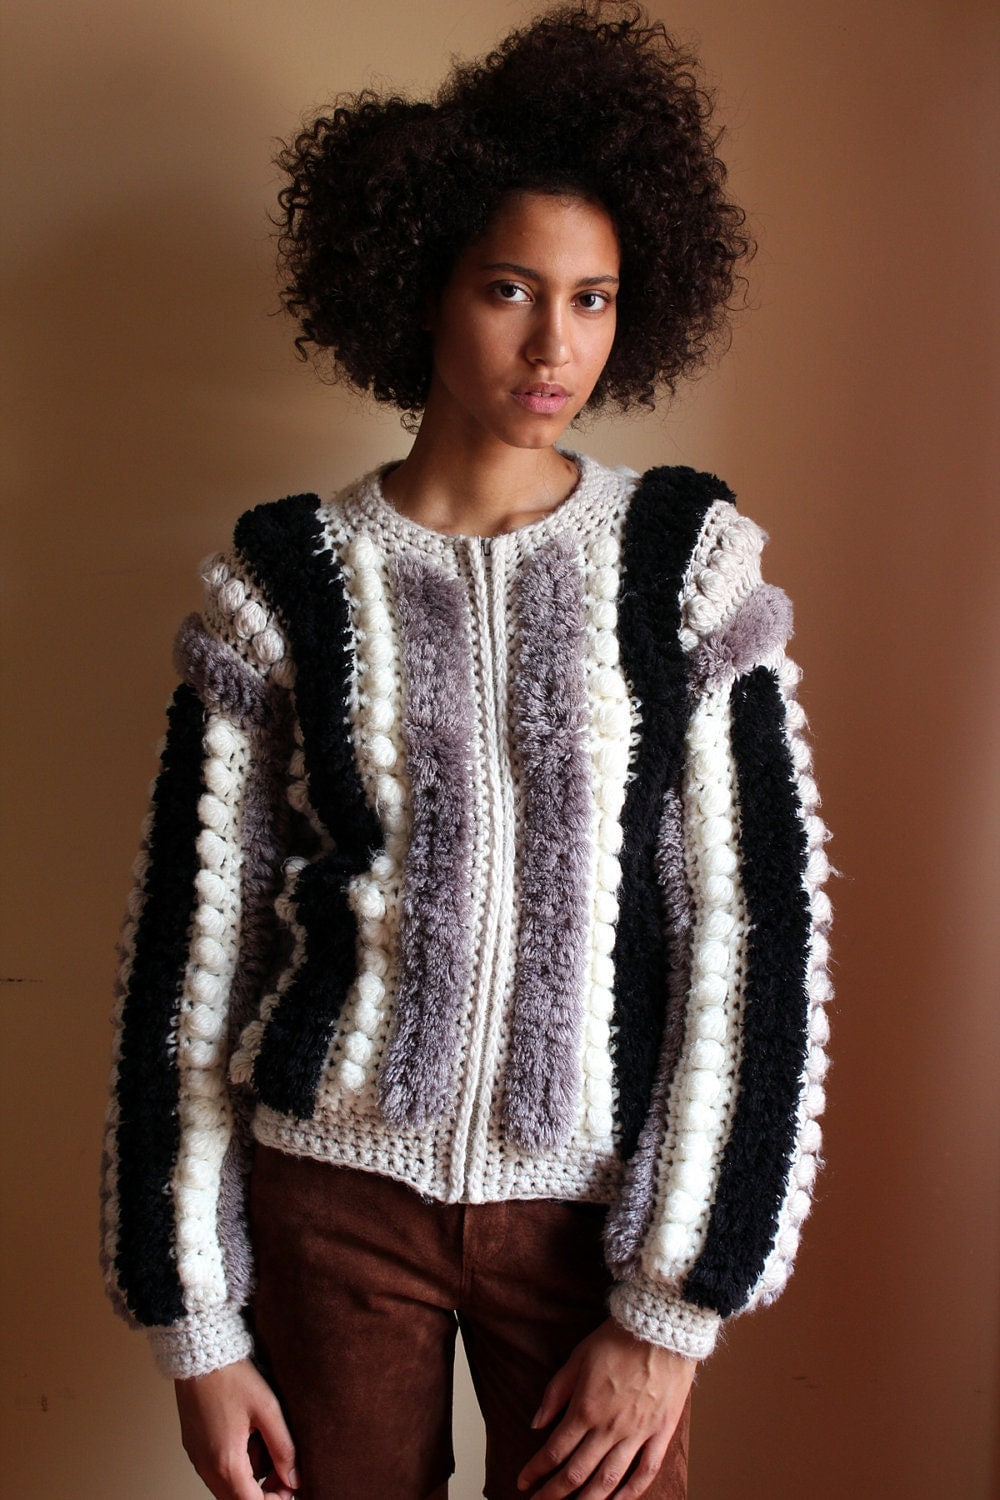 Crochet Shrug | Shrug Jacket | Shrug Sweater | Black Shoulder Shrugs